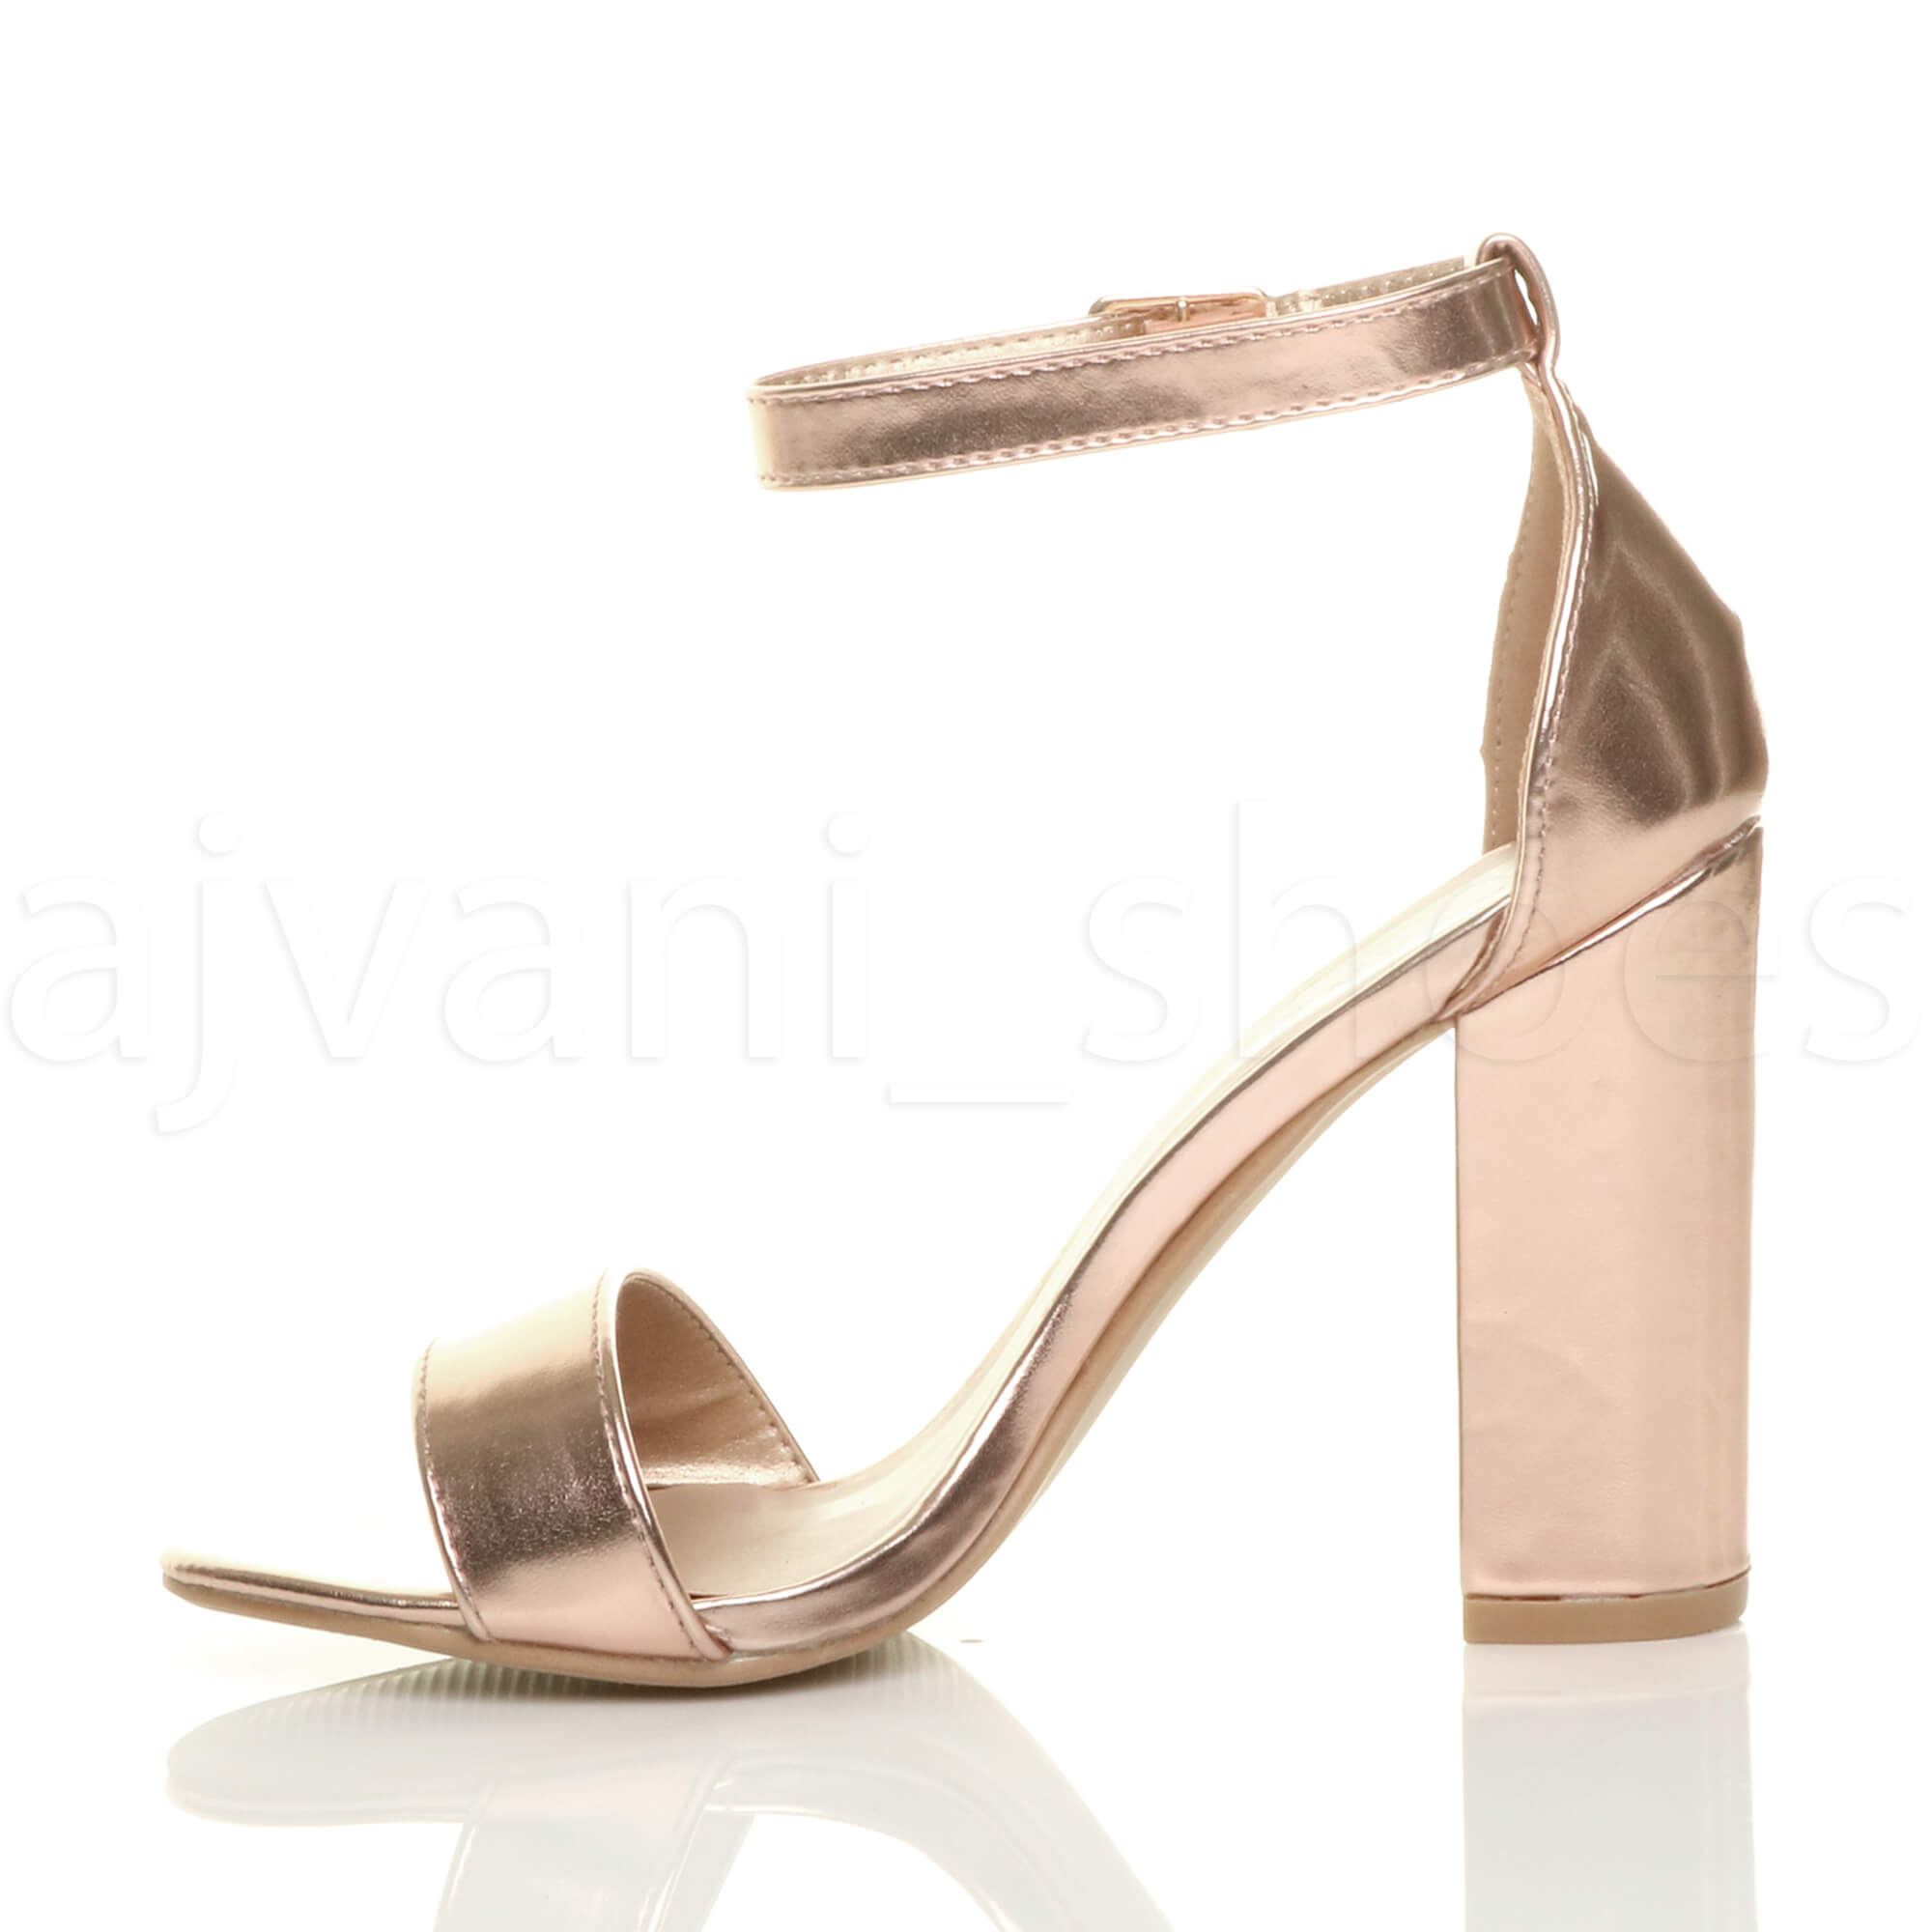 WOMENS-LADIES-BLOCK-HIGH-HEEL-ANKLE-STRAP-PEEP-TOE-STRAPPY-SANDALS-SHOES-SIZE